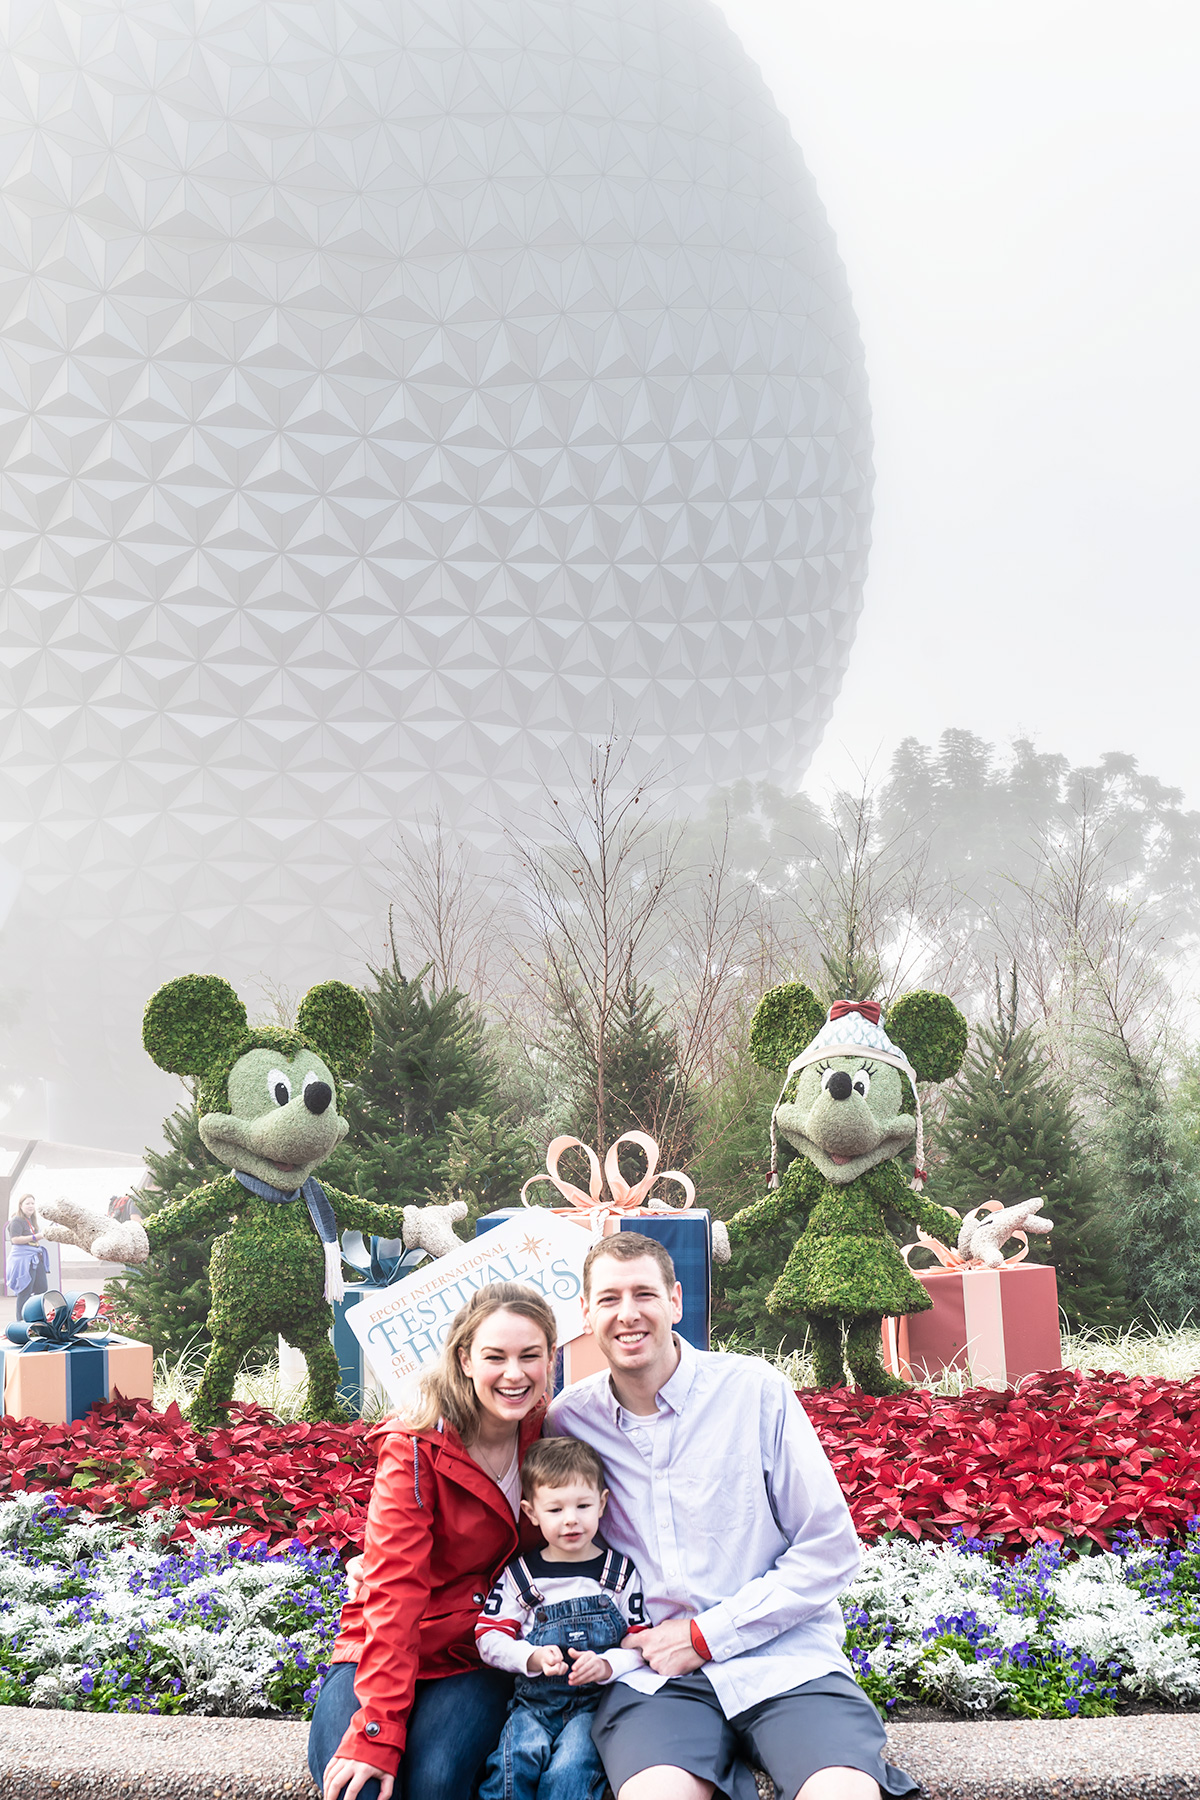 Us-at-Disneys-Epcot-at-Christmas